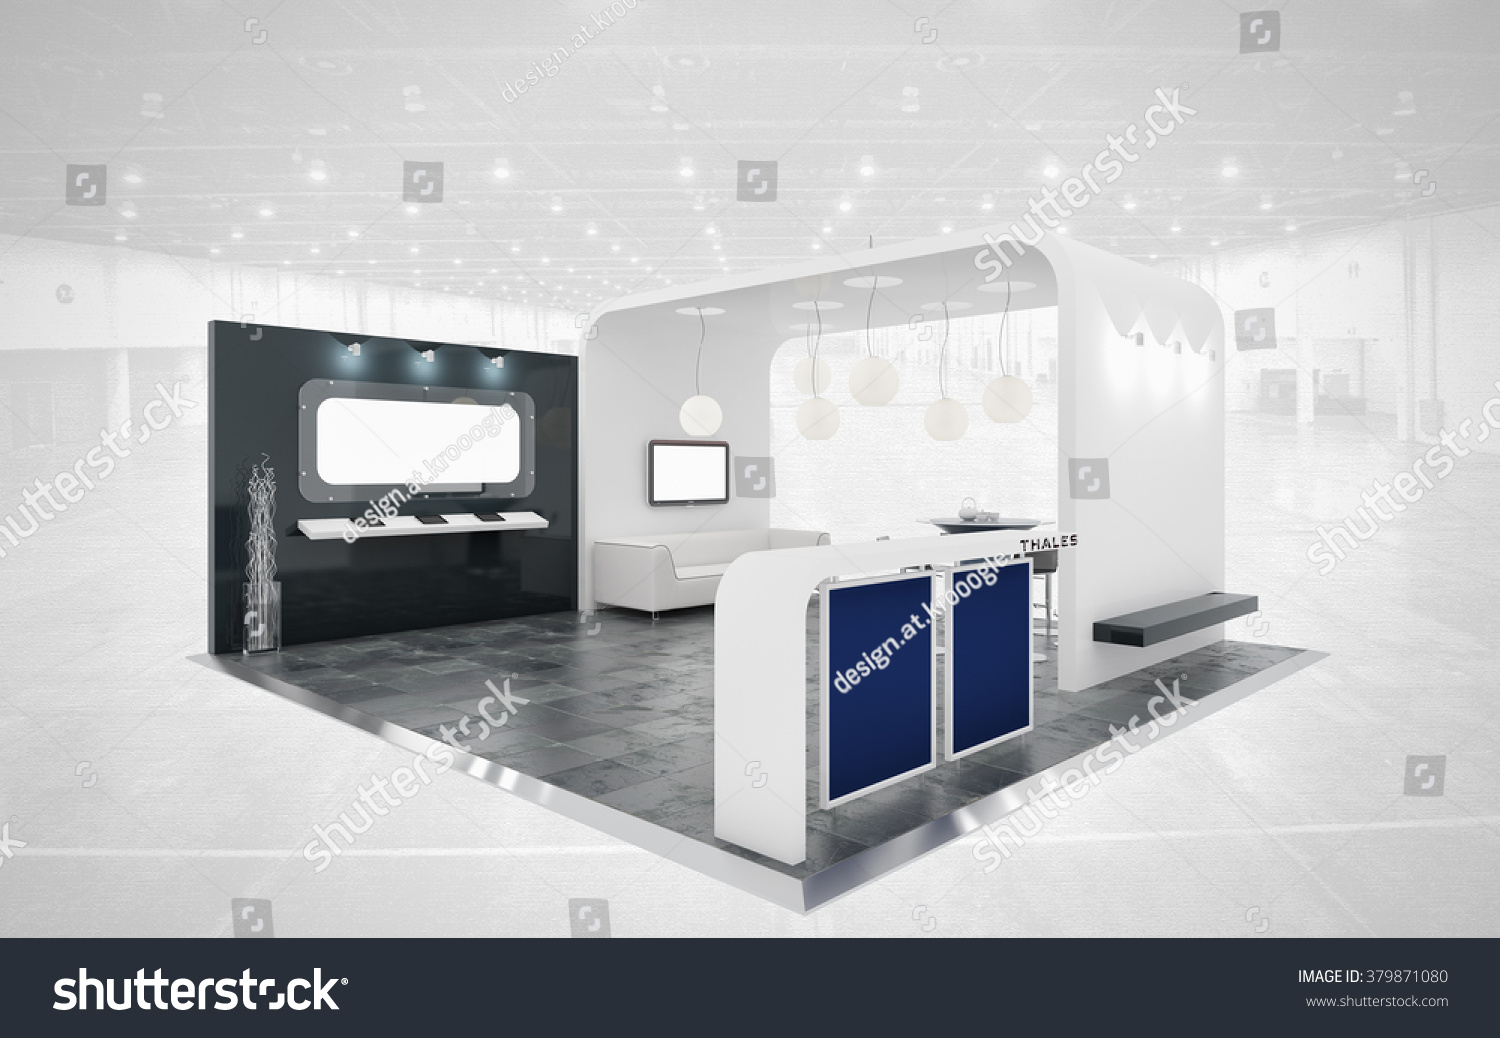 D Rendering Exhibition : Black and white exhibition stand d rendering stock photo